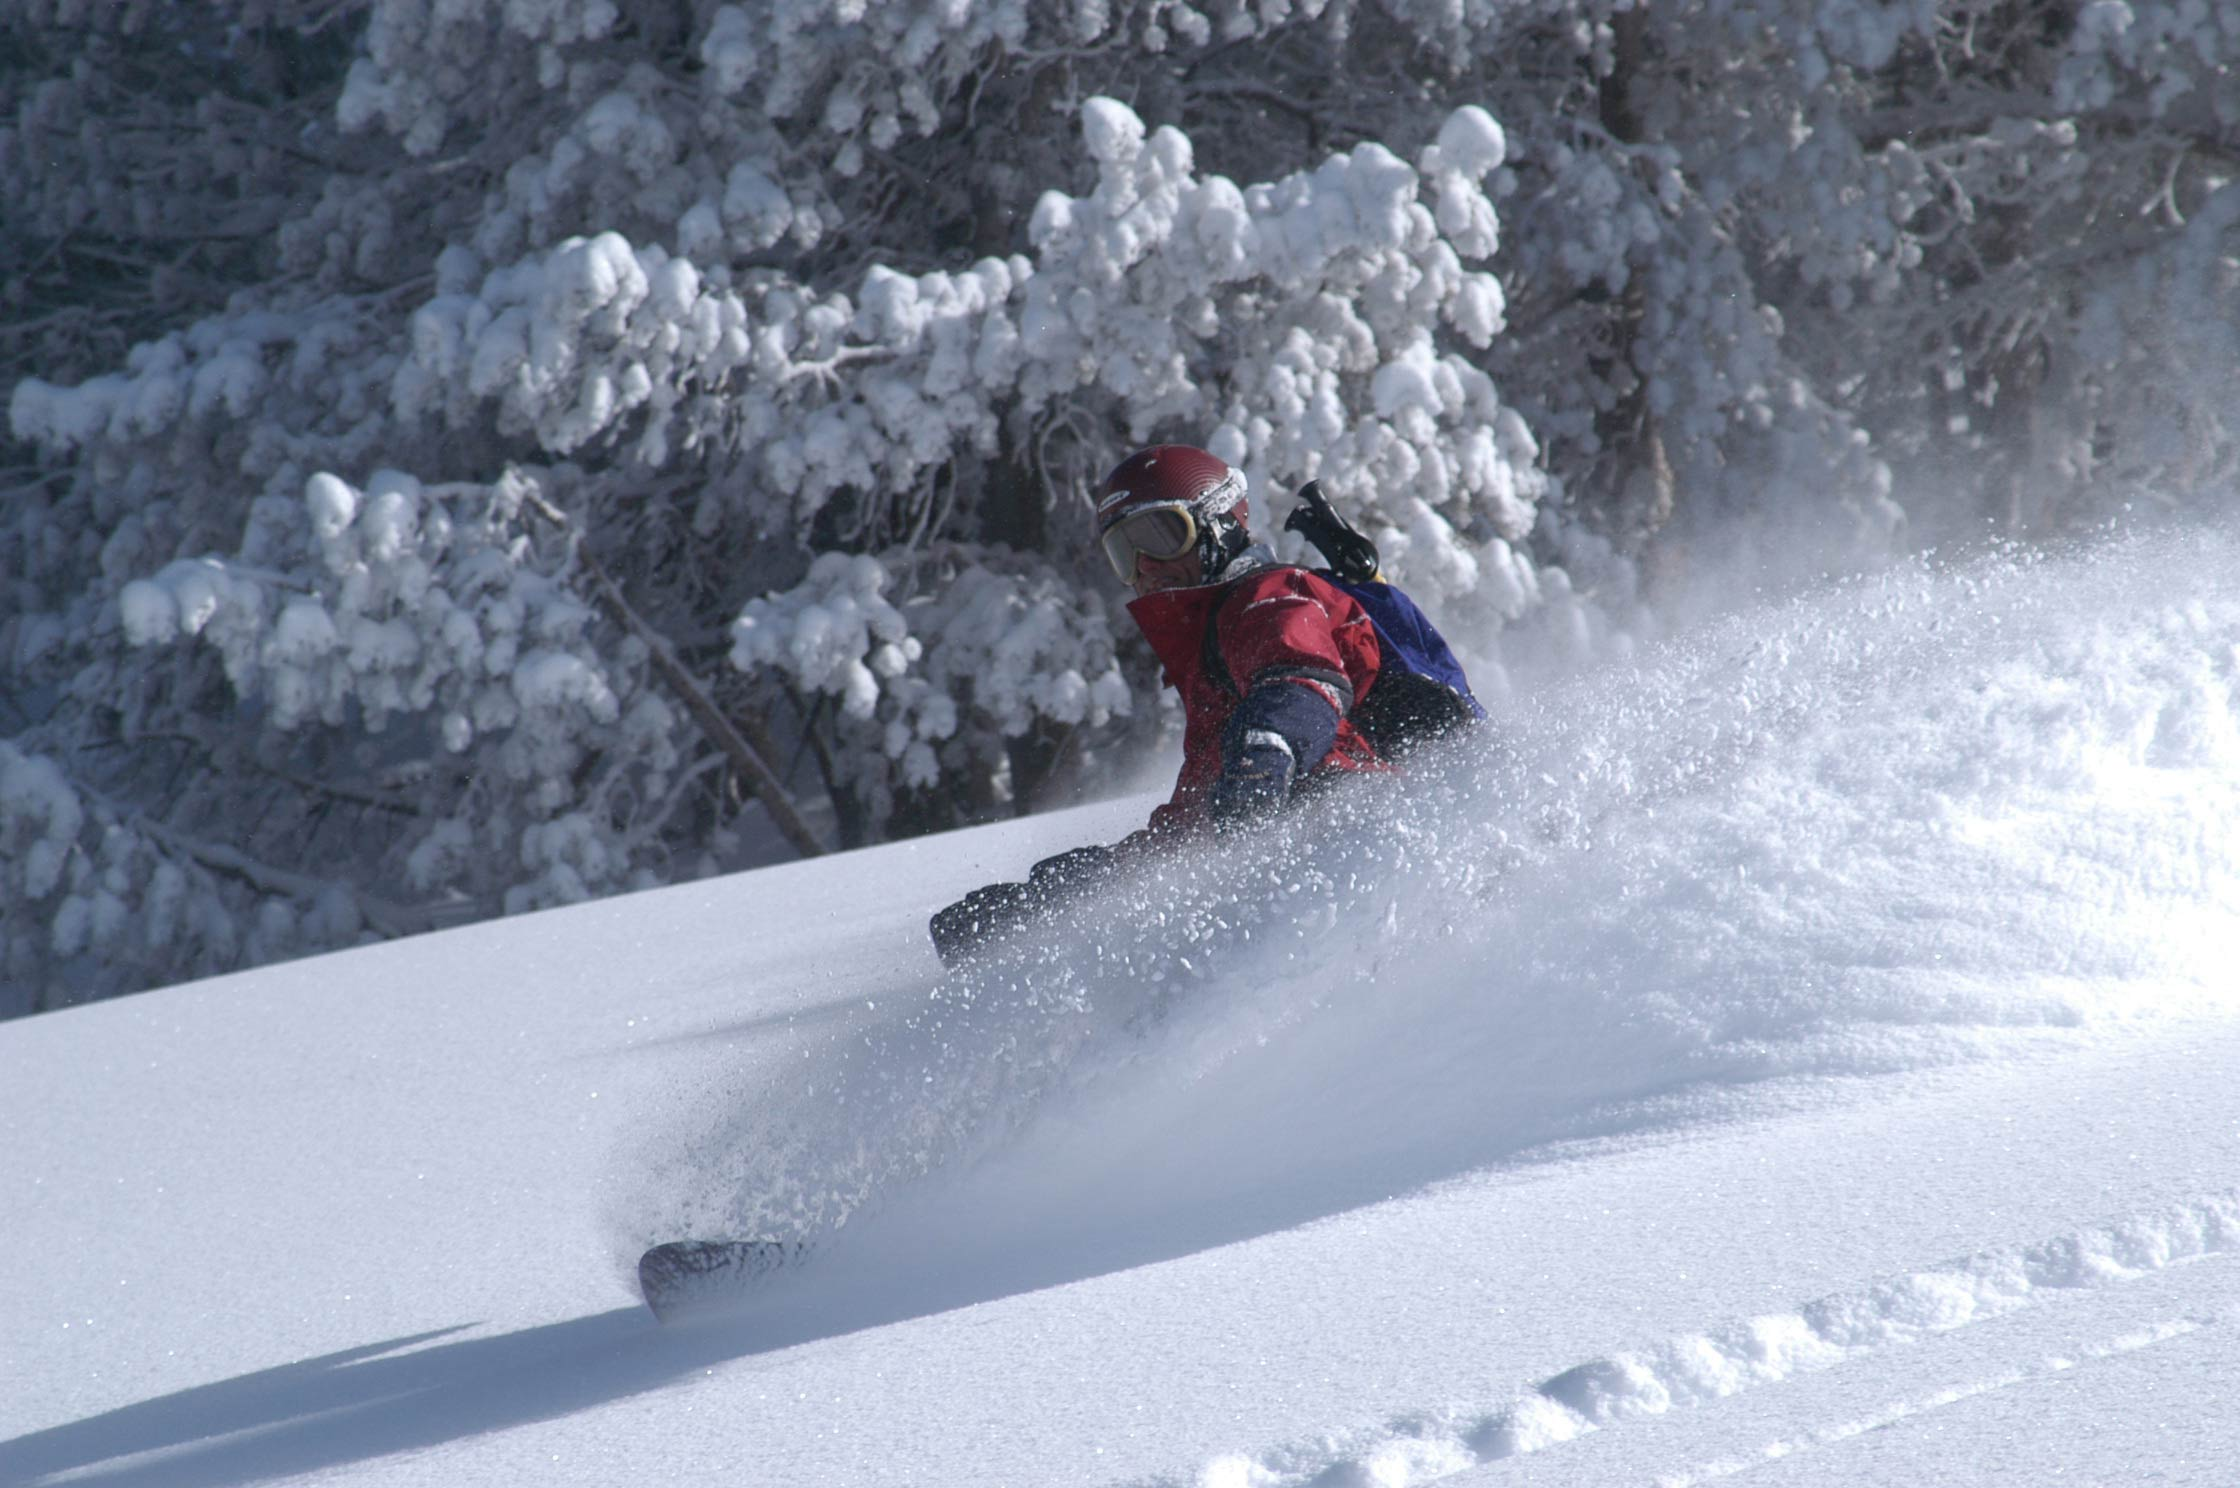 its been cold enough here with the kilns off from the lack of electricity due to the windy storm we had. Here I am in better days in the powder back country.